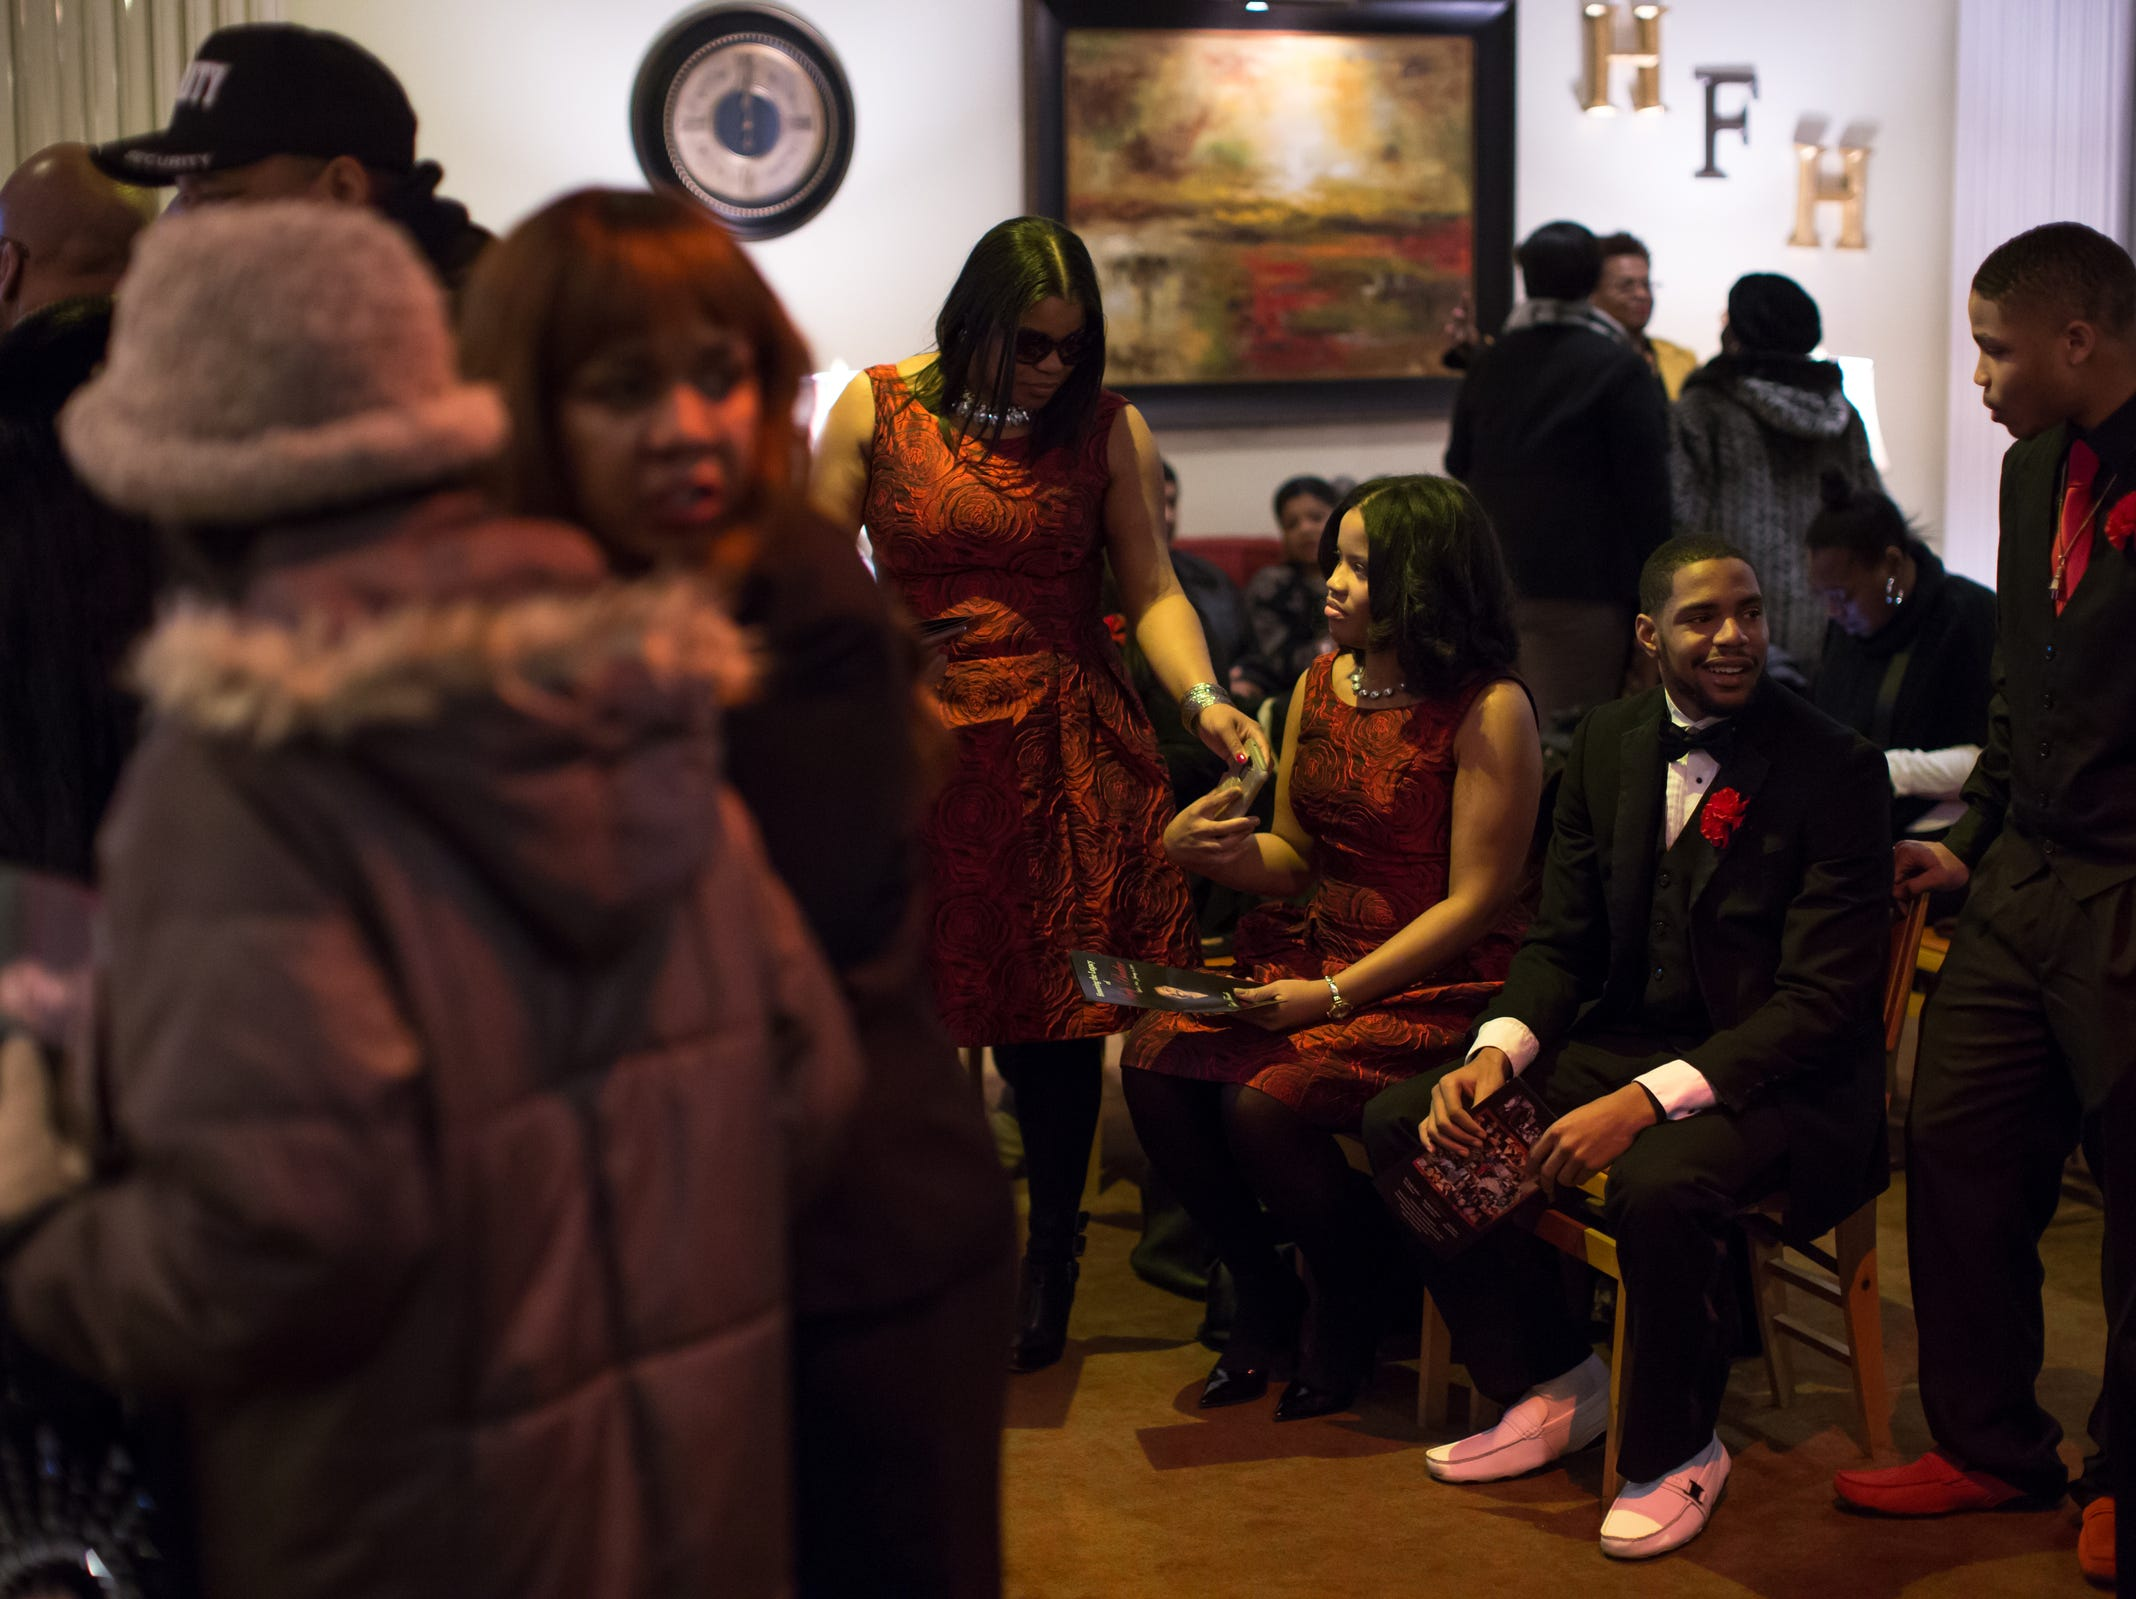 (right to left) Branderian Barker, BreÕAndre Barker, Britney Sharp and Misty Sharp, all of Detroit, sit as guests arrive for the funeral of their father, the late Rudy Barker, at Hutchison Funeral Home in Detroit on Monday, January 21, 2019. Barker was known for his impressions of late civil rights leader Martin Luther King Jr. and was buried on the national holiday honoring his hero.